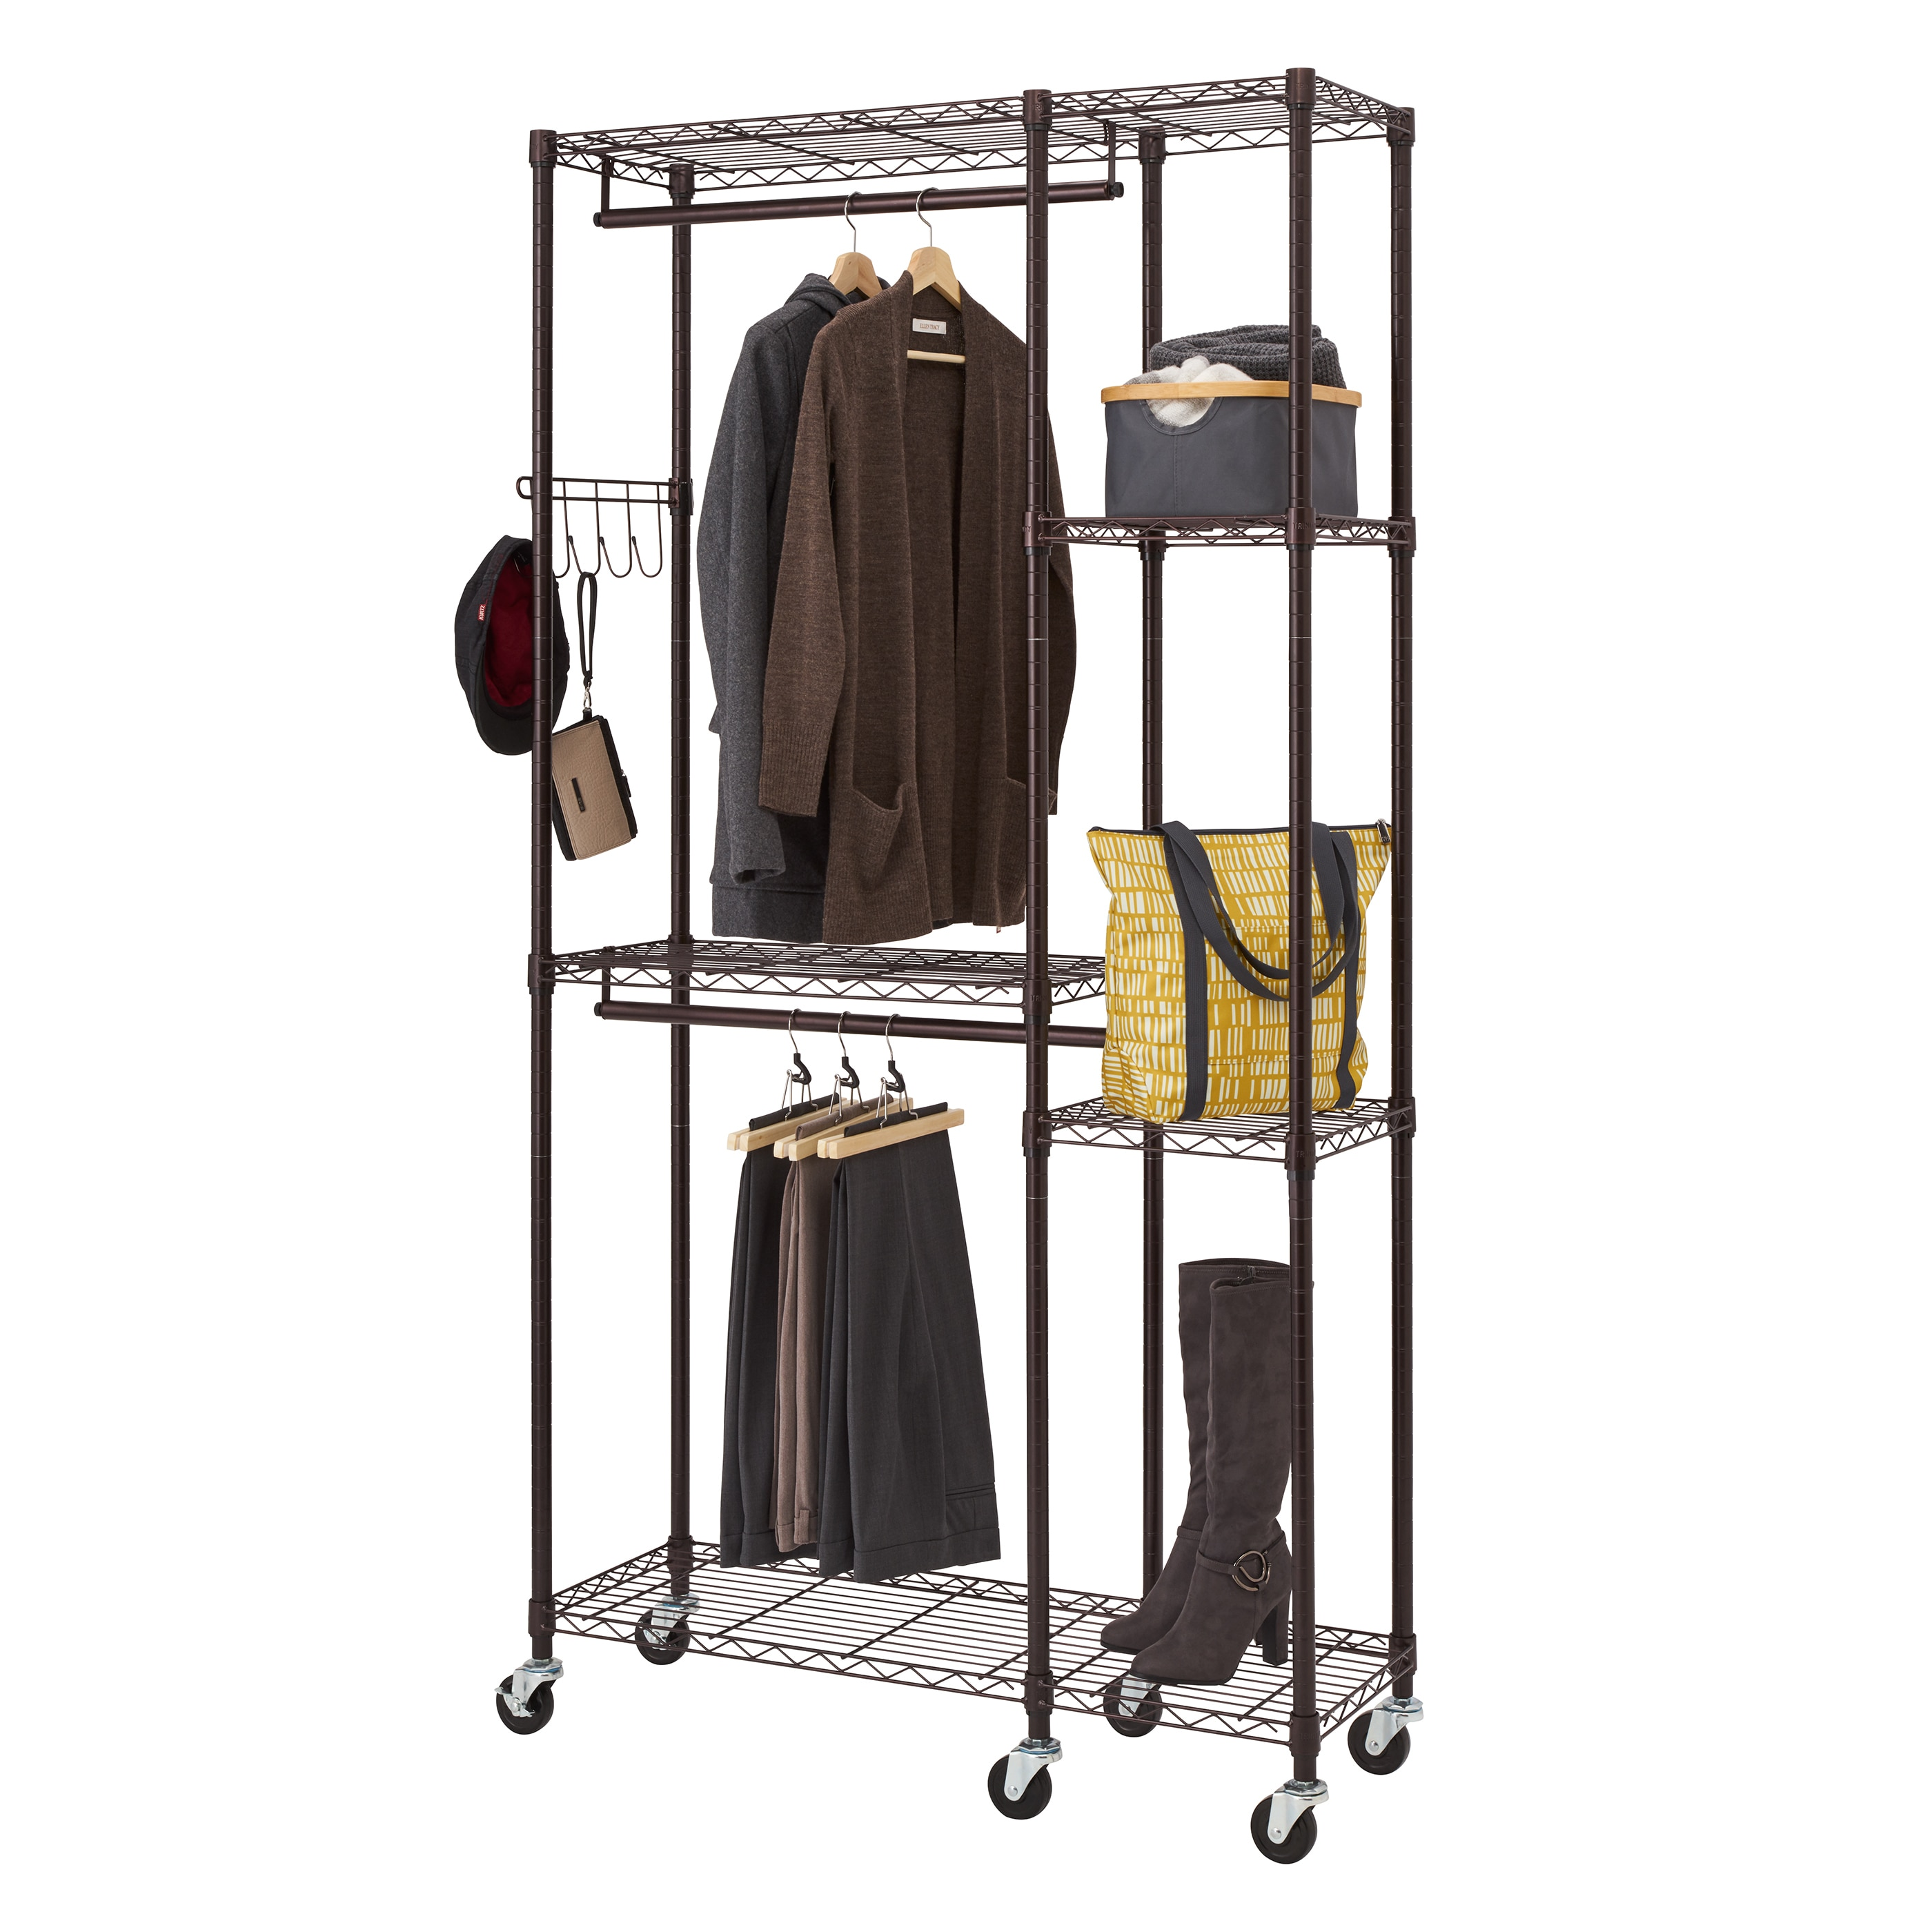 solid wardrobe solution vintage the coat rack fullxfull cranworth shelf rail listing clothes style il metal hallway with industrial